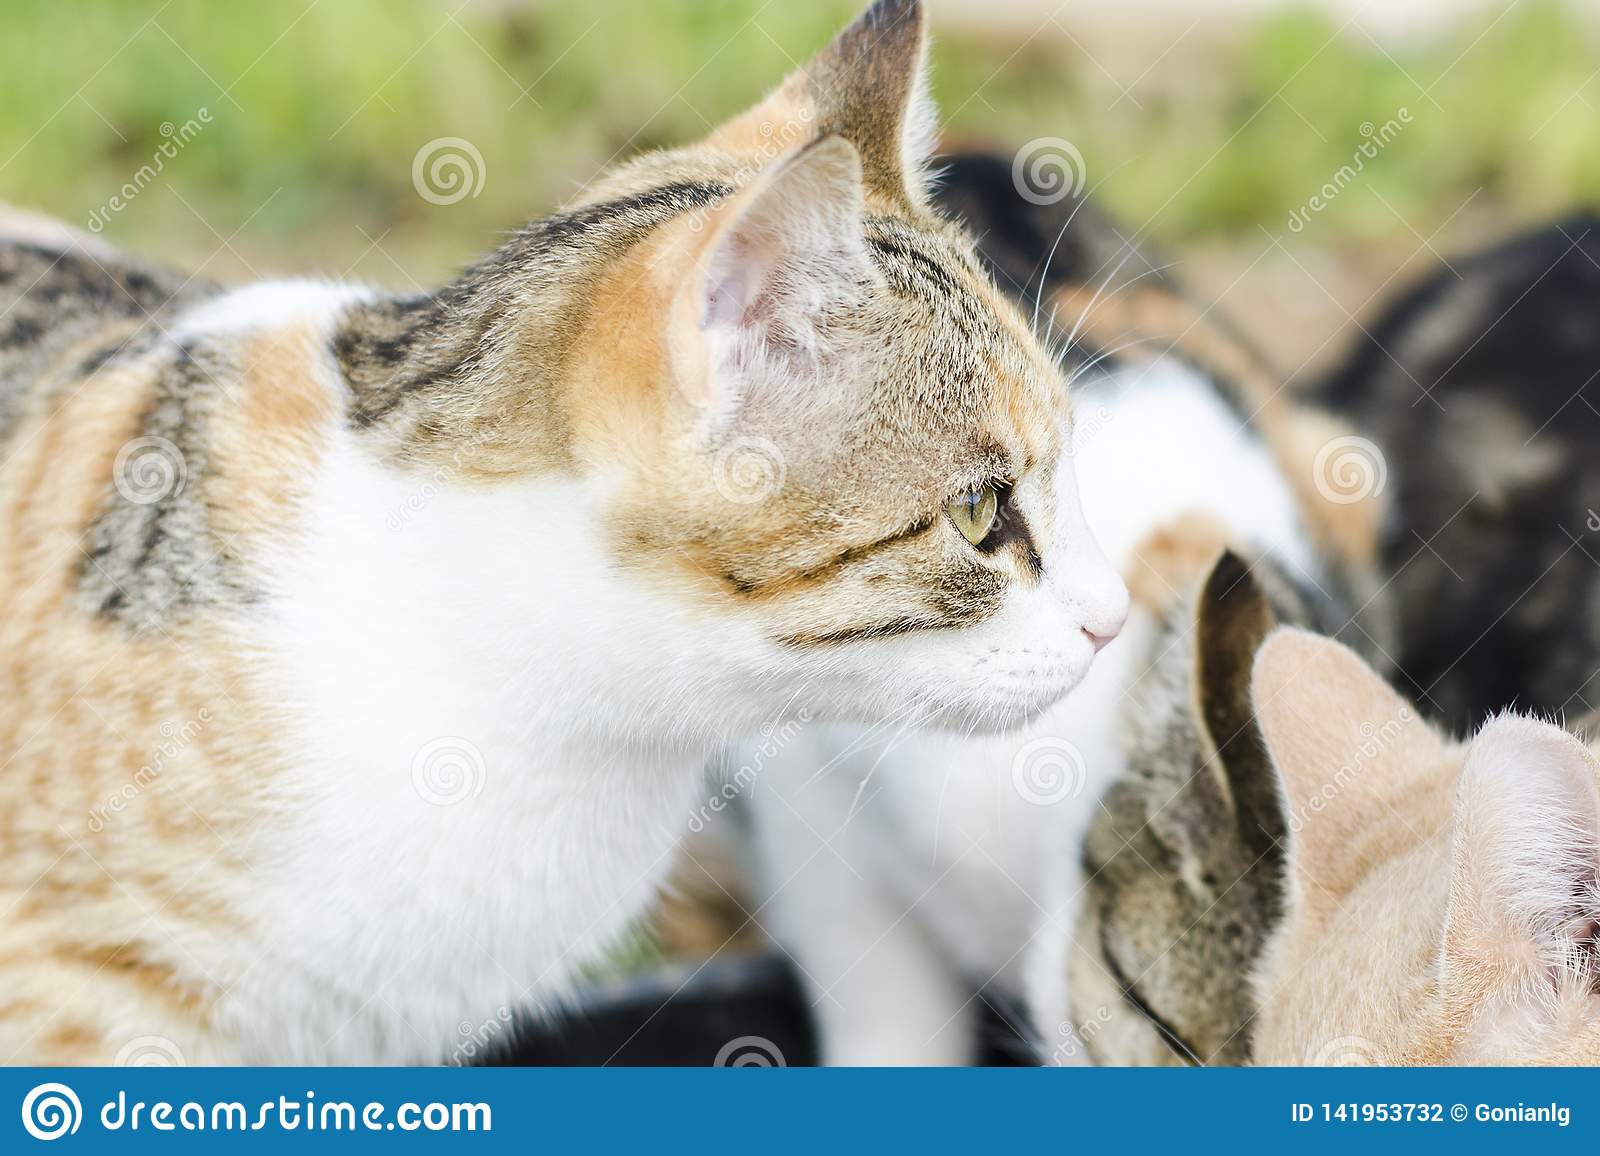 Cats eat cat food. Big cat and small kitten eating pieces of meat from the plate. We see pink tongue. Snouts large cats. Food for